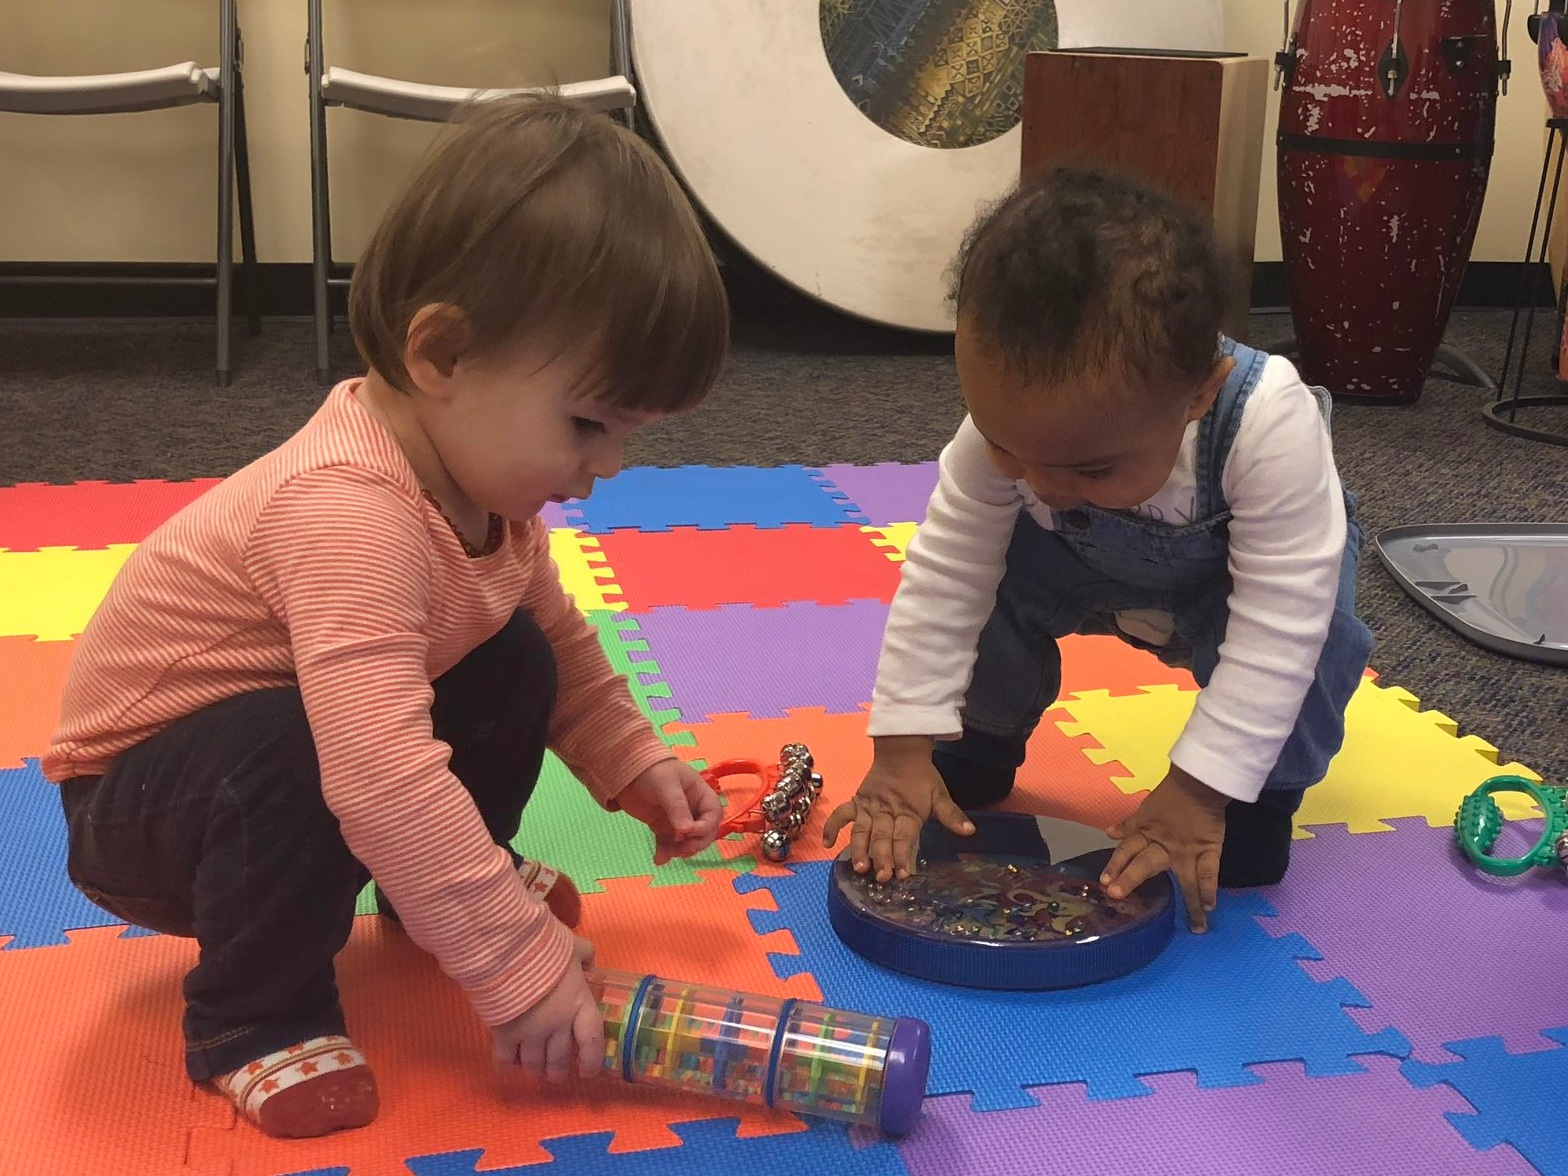 Available Time Slots: 10:30AM to 12:30PM OR 2:00PM to 4:00PM    Fee: $150 per child   This four-day program will give little ones ages 1 to 5 the chance to explore the wonderful world of music and artistic creation together with their parent or caregiver. The fun begins with a 45-minute music class where we will explore varied music genres, instruments and sounds. After a quick break, participants will delve into a world of creative imagination by learning to make instruments, painting with music and much more! Limited Spots available. Contact Sheree Grate at  babyandme@danielsmusic.org  or 212.289.8912 to register today!  Click here  for details on Session II hosted in August.